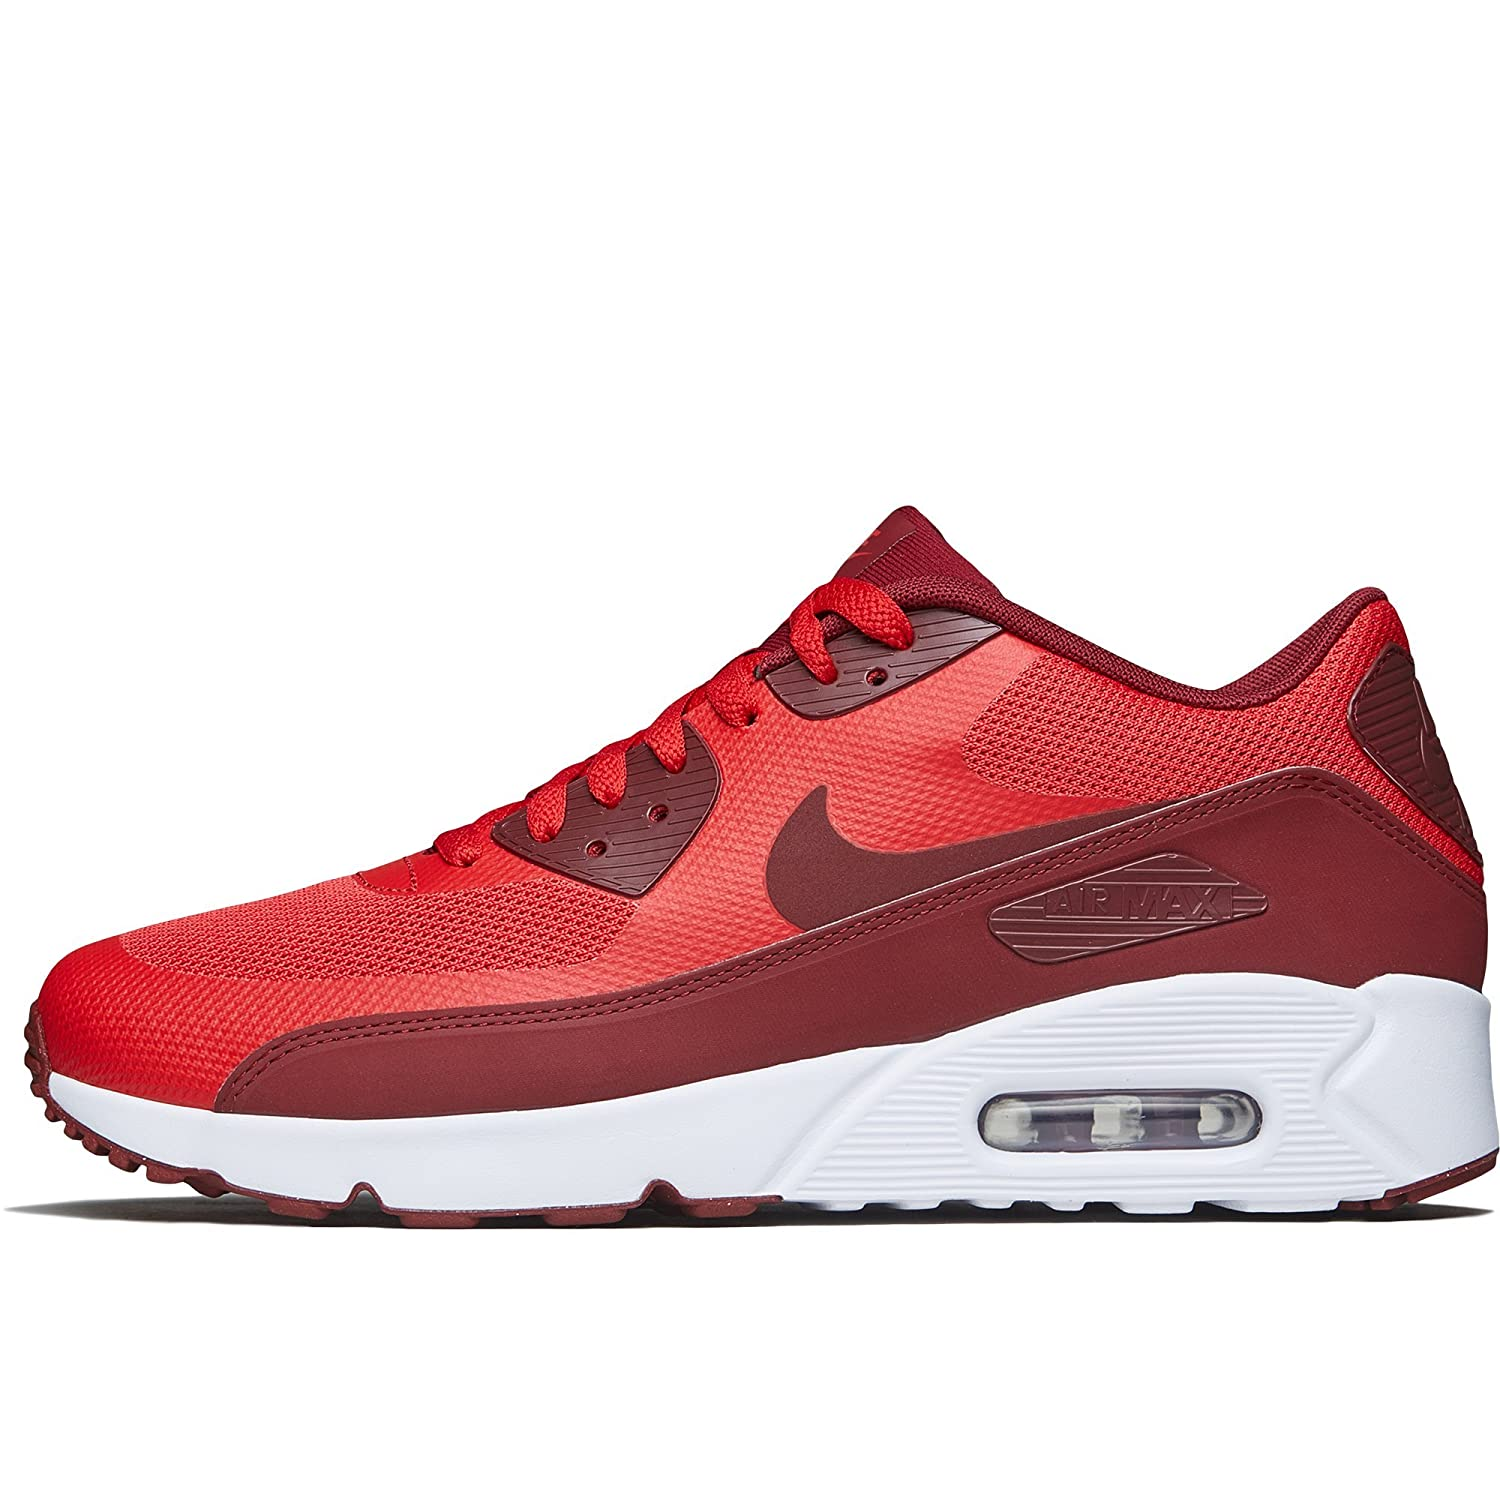 best cheap 0f14f c4063 Nike AIR MAX 90 Ultra 2.0 Essential 875695-600 Men s Shoes (11.5)   Amazon.ca  Shoes   Handbags